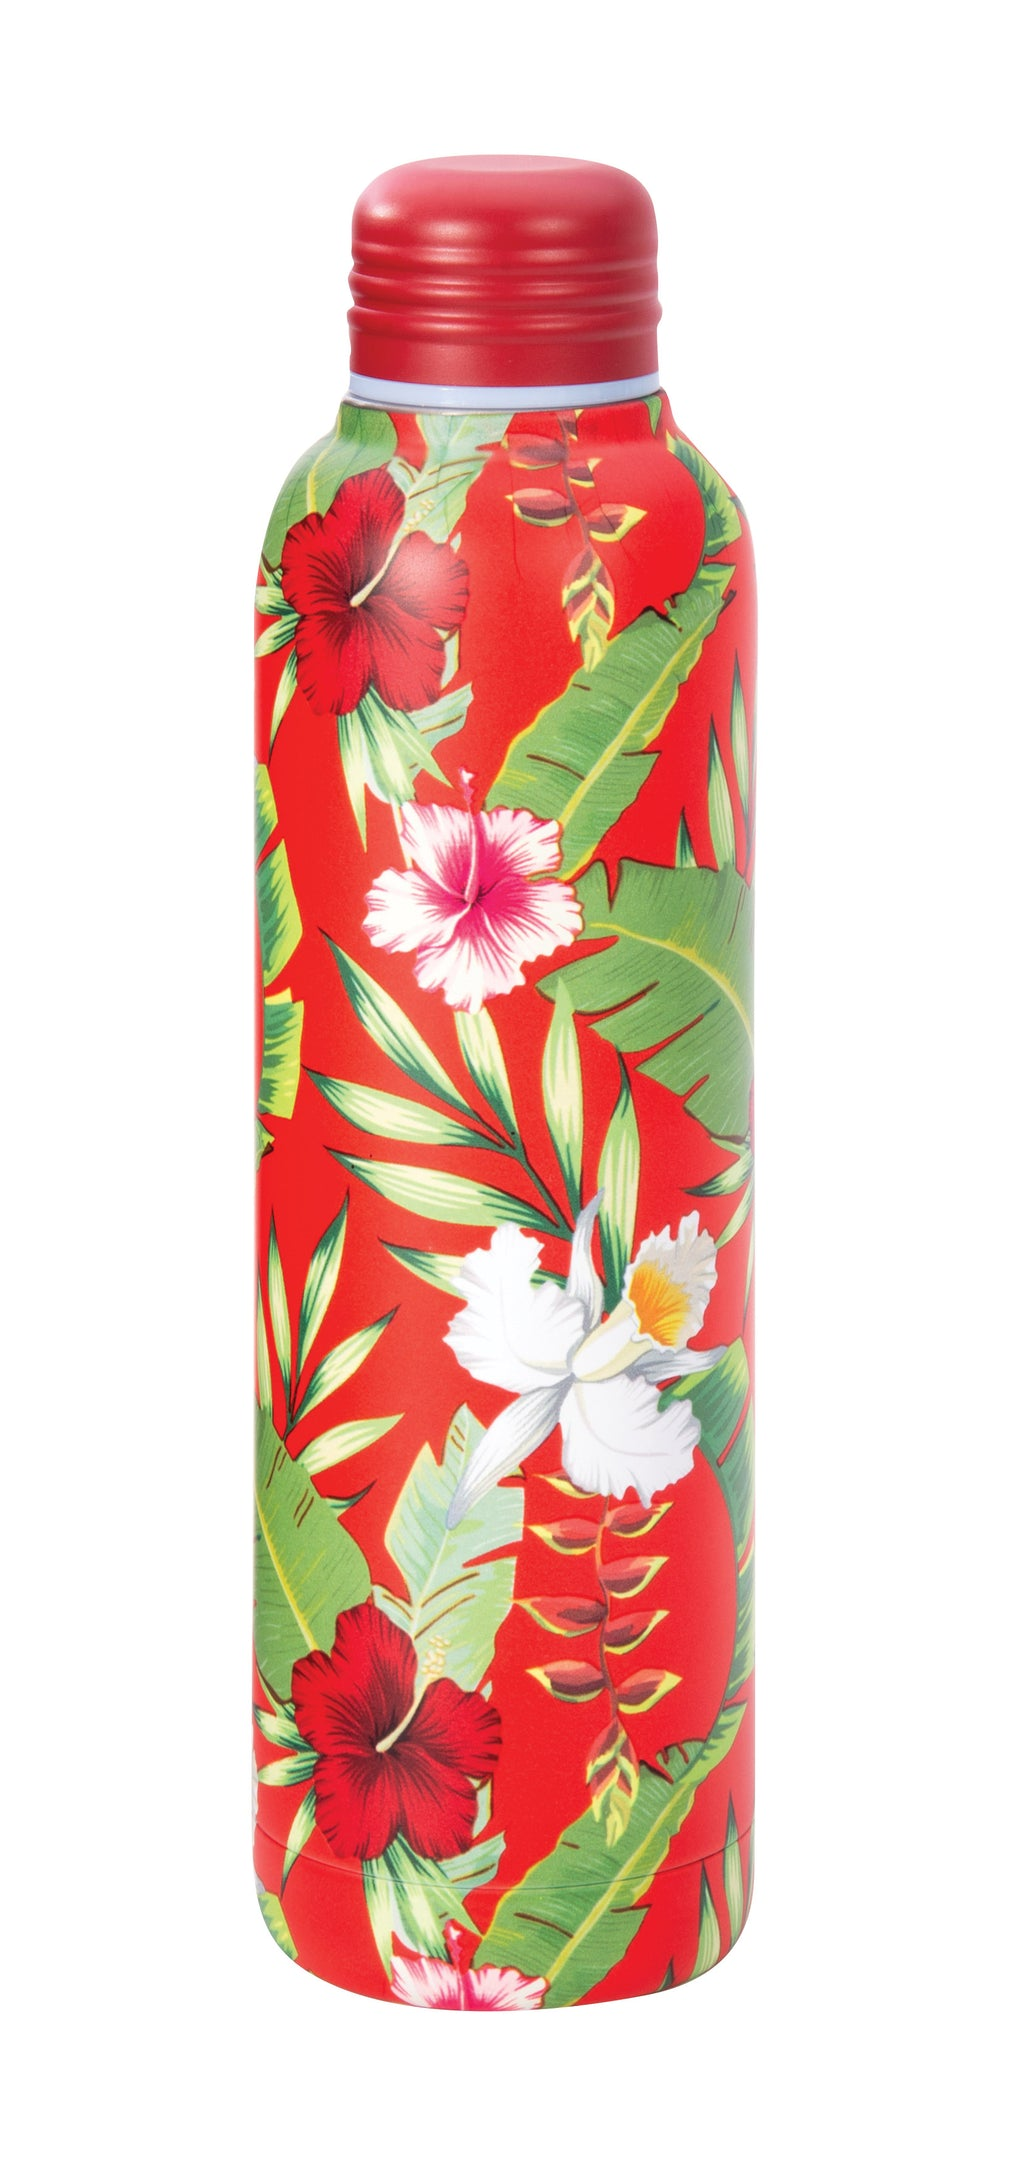 IS GIFT Insulated Stainless Steel Water Bottle 500ml - Tropical Red,Stainless Steel Water Bottle, IS Gift - Yum Yum Store